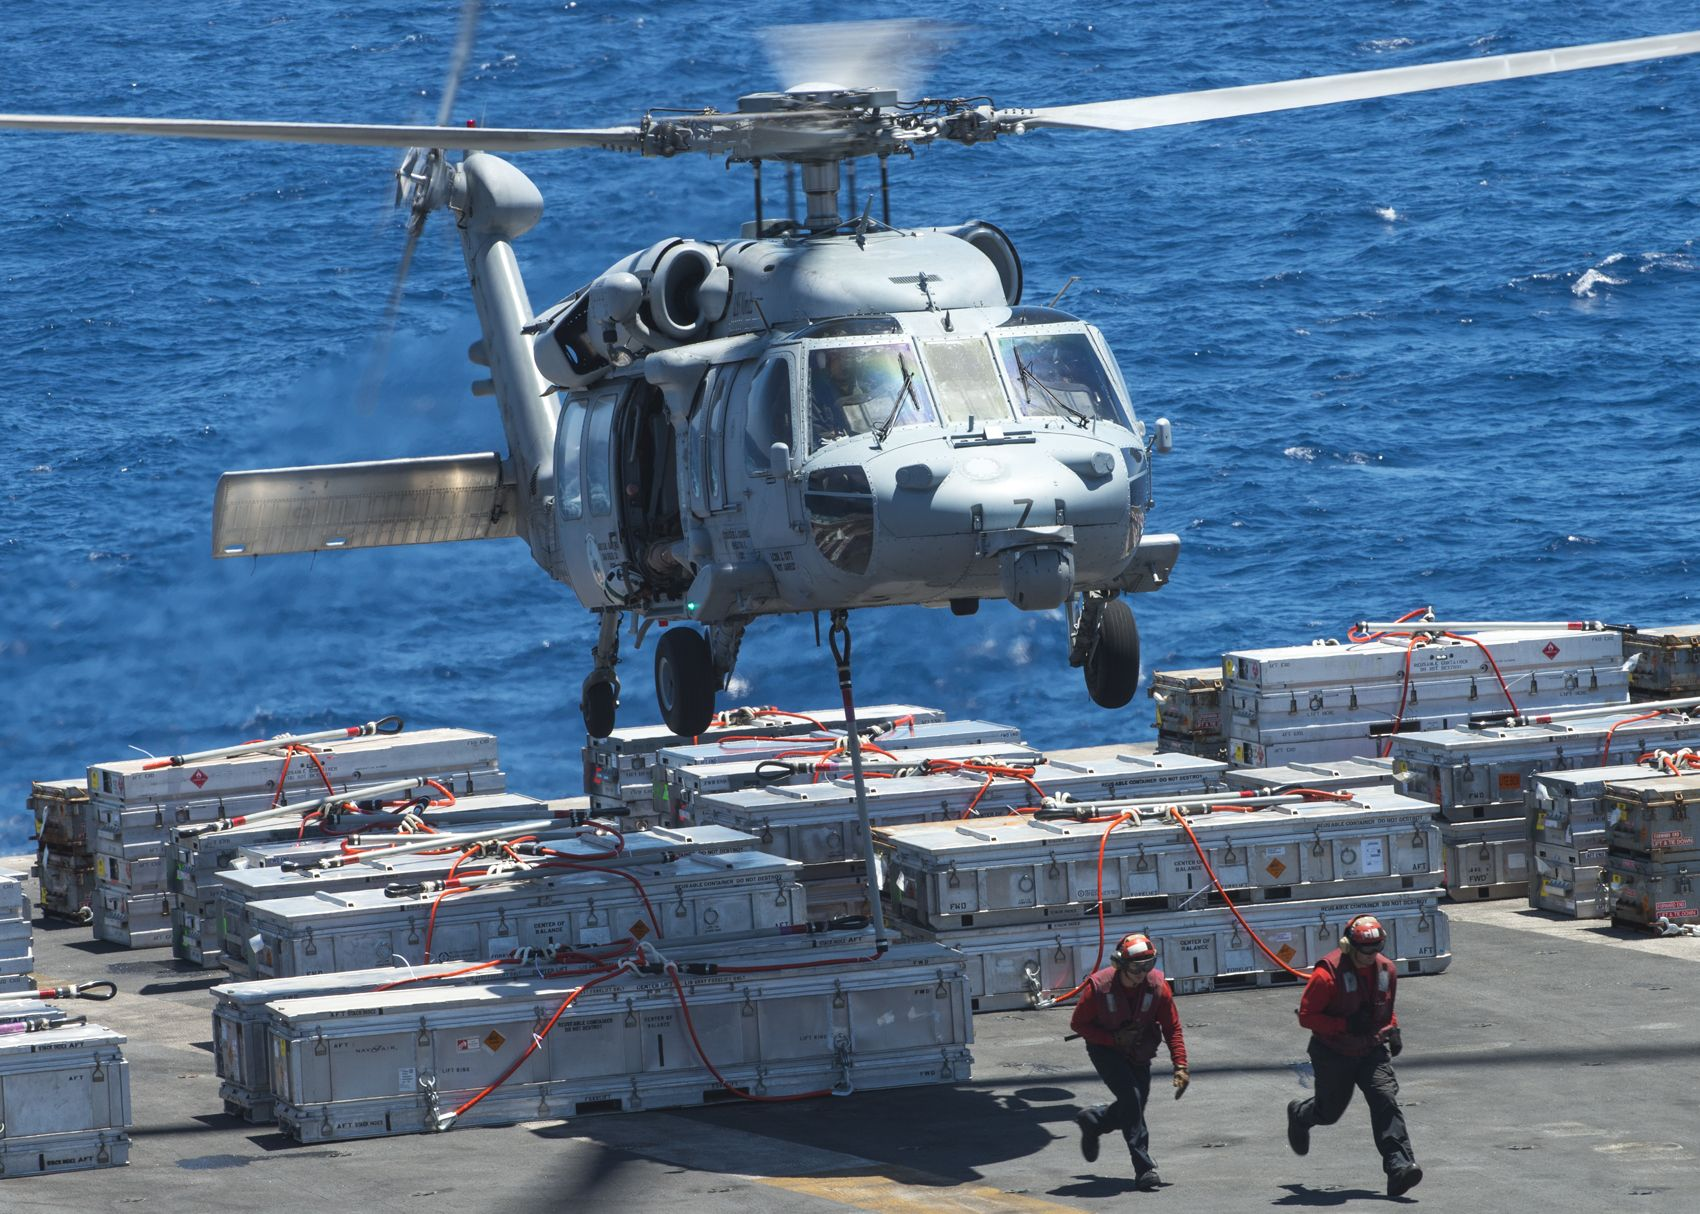 PACIFIC OCEAN (July 8, 2015) An MH-60S Sea Hawk helicopter assigned to the Eightballers of Helicopter Sea Combat Squadron (HSC) 8 lifts an ordnance canister from the aircraft carrier USS Carl Vinson (CVN 70). Carl Vinson is underway performing ammunition off-load. (U.S. Navy Photo by Mass Communication Specialist 3rd Class D'Andre L. Roden/Released)